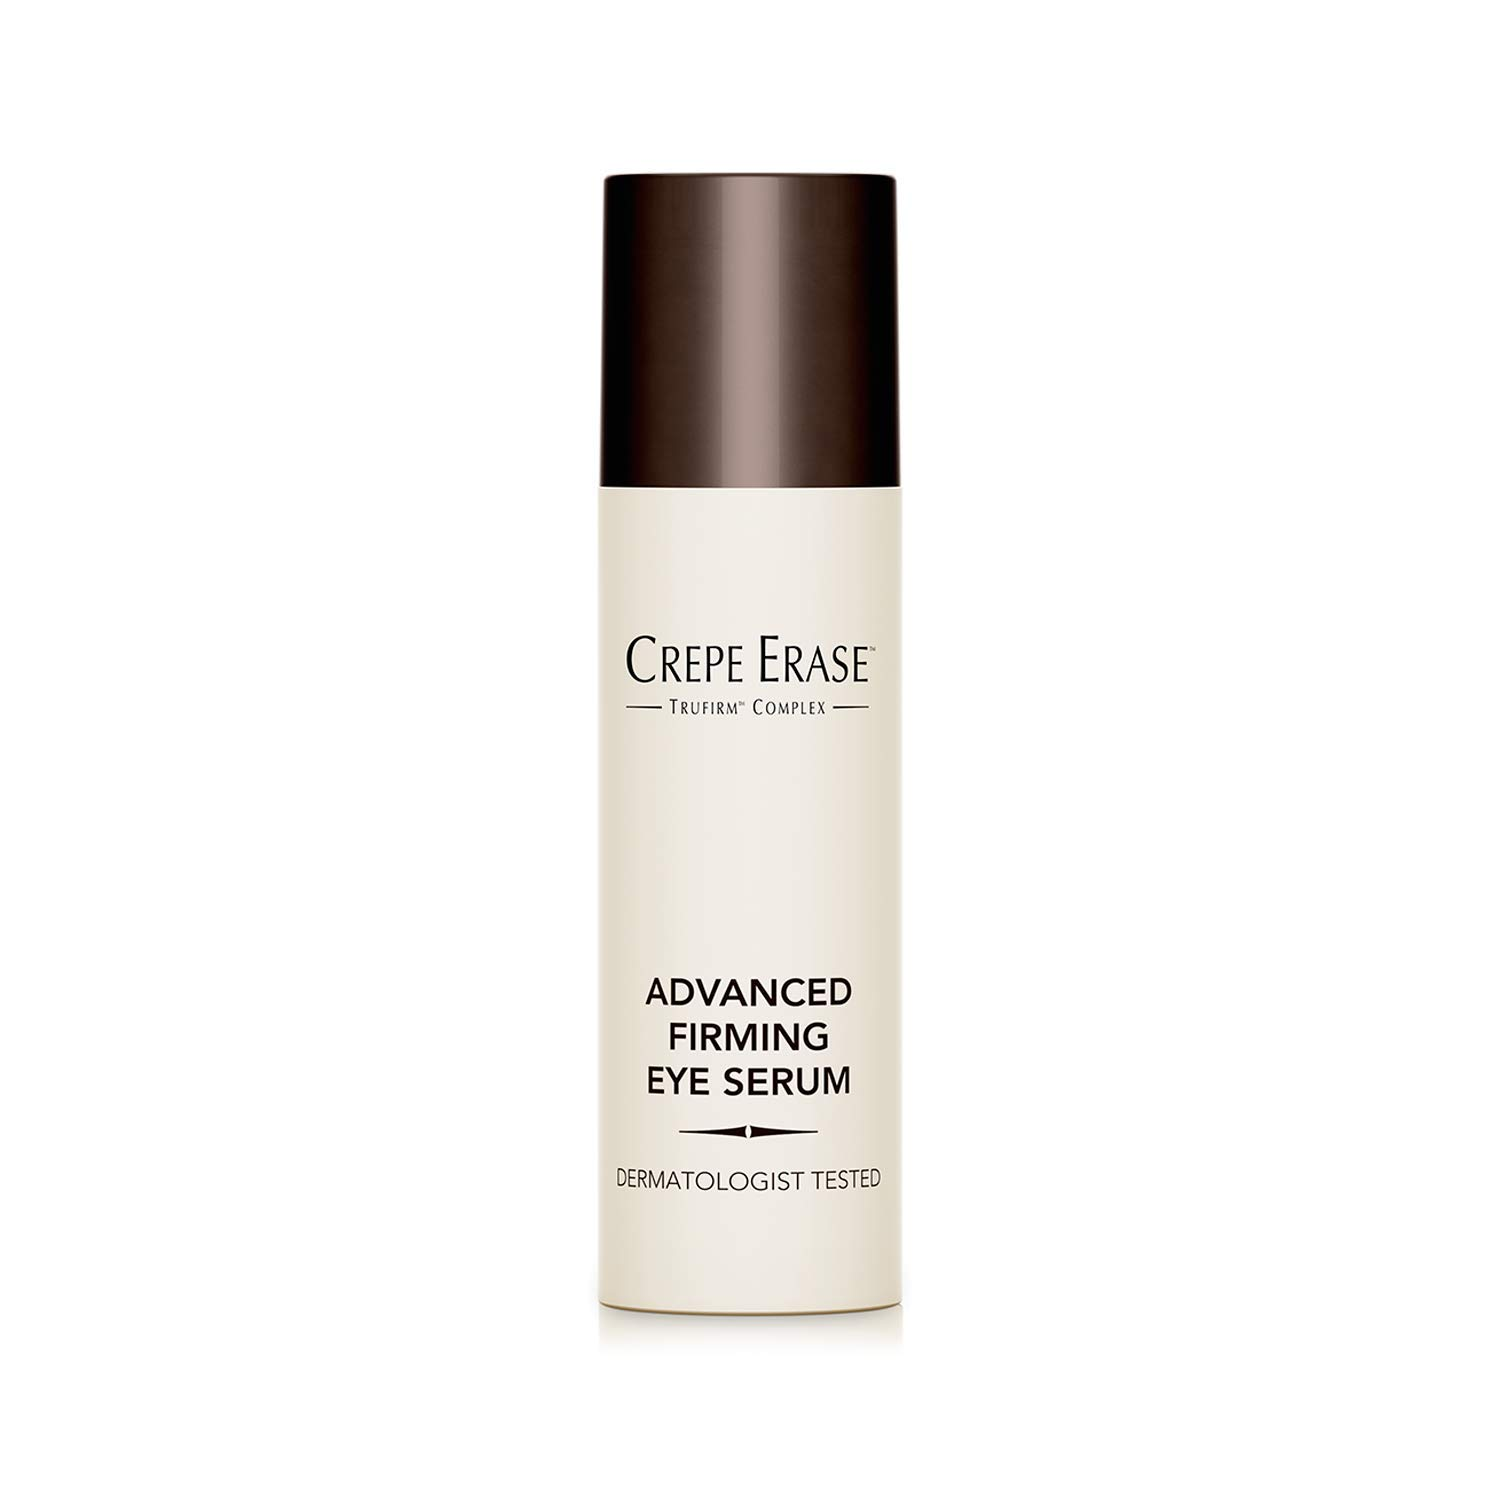 Crepe Erase - Advanced Firming Eye Serum - TruFirm Complex - 0.5 Ounce by Crepe Erase